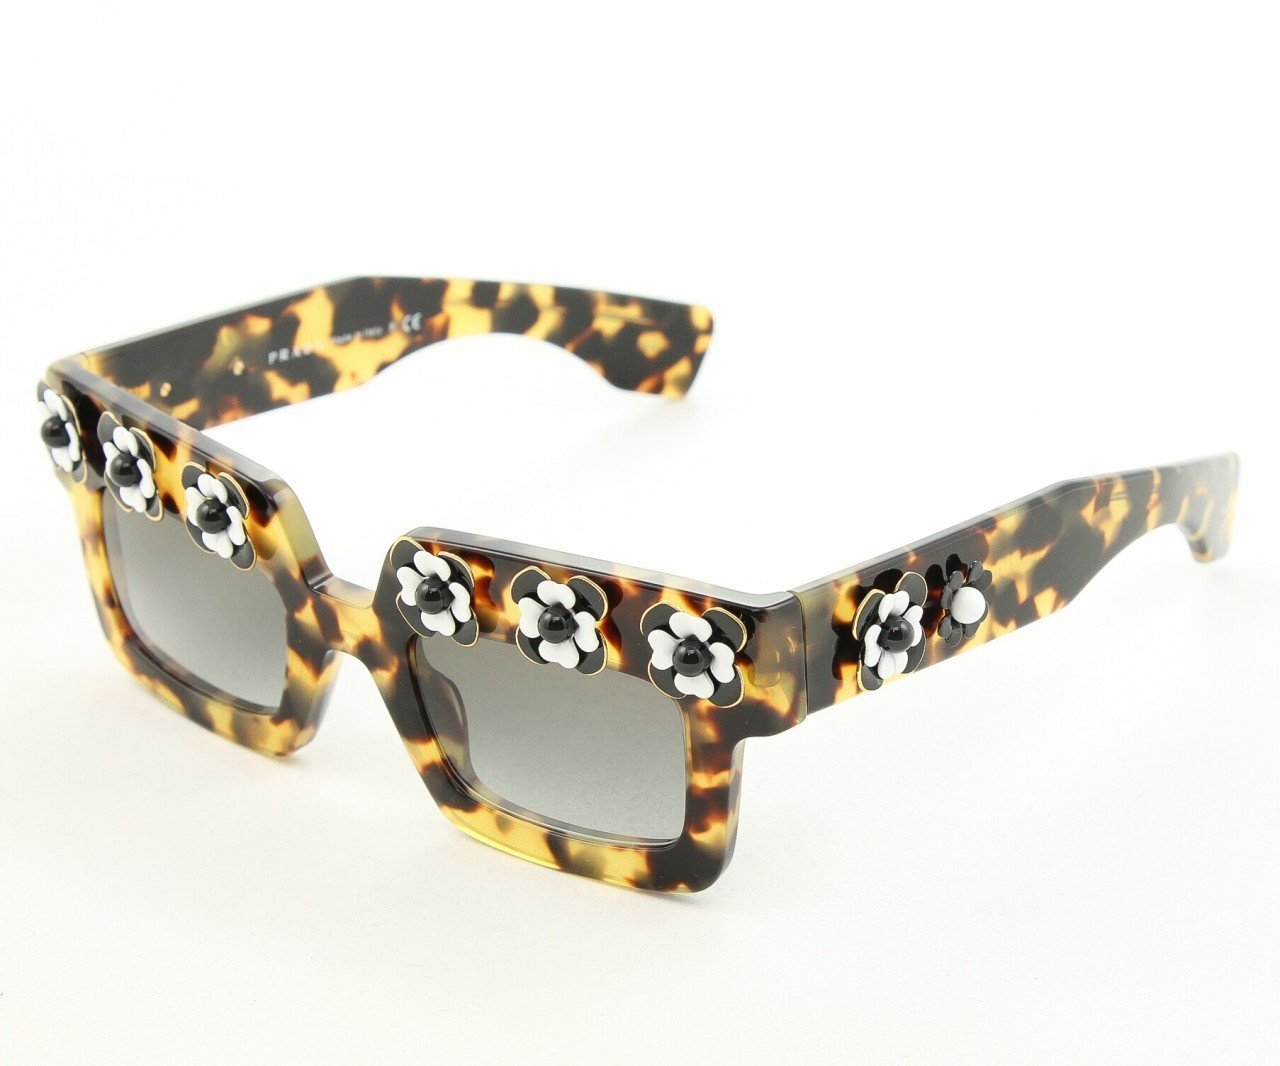 Prada SPR 25PS Sunglasses 7S0-0A7 Brown Havana with Matching Flower Pattern